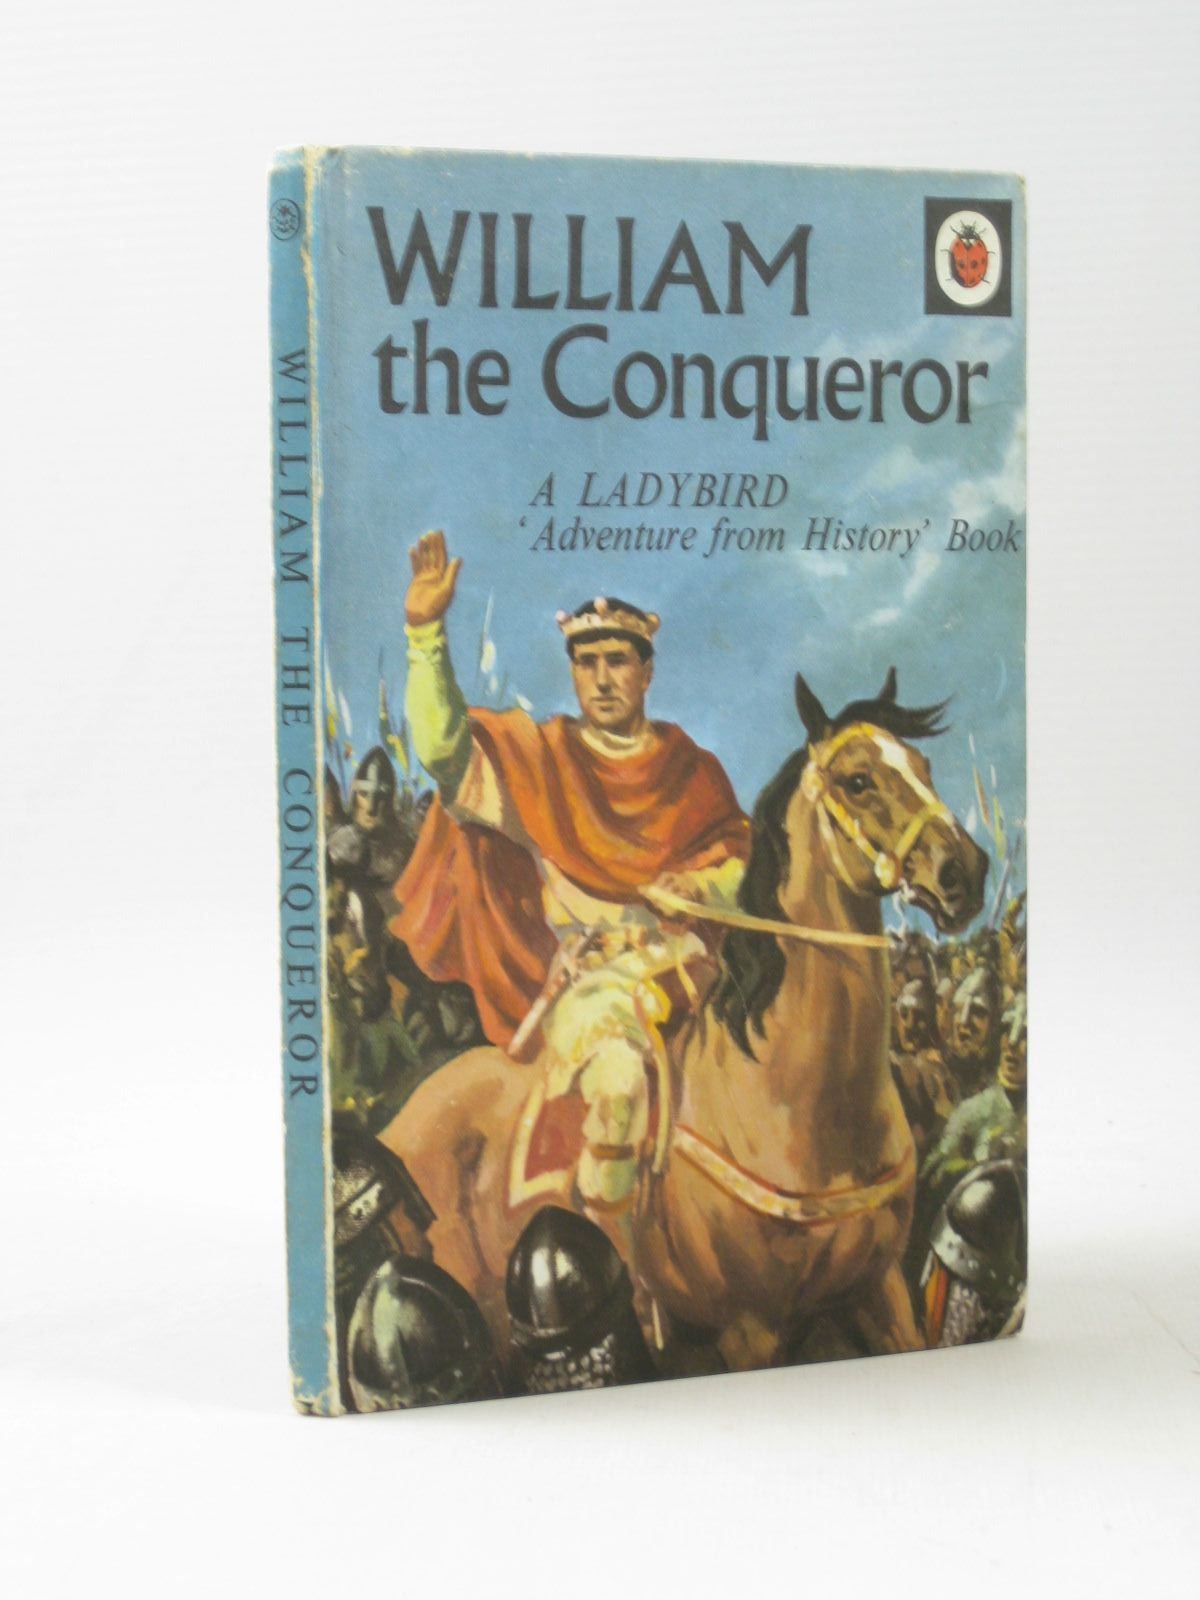 the life and adventures of william the conqueror (7) william the conqueror, confession on his on his deathbed (september, 1087) i tremble my friends/ when i reflect on the grievous sins which burden my conscience, and now, about to be summoned before the awful tribunal of god, i know not what i ought to do i was bred to arms from my childhood, and am stained from the rivers of blood i have.